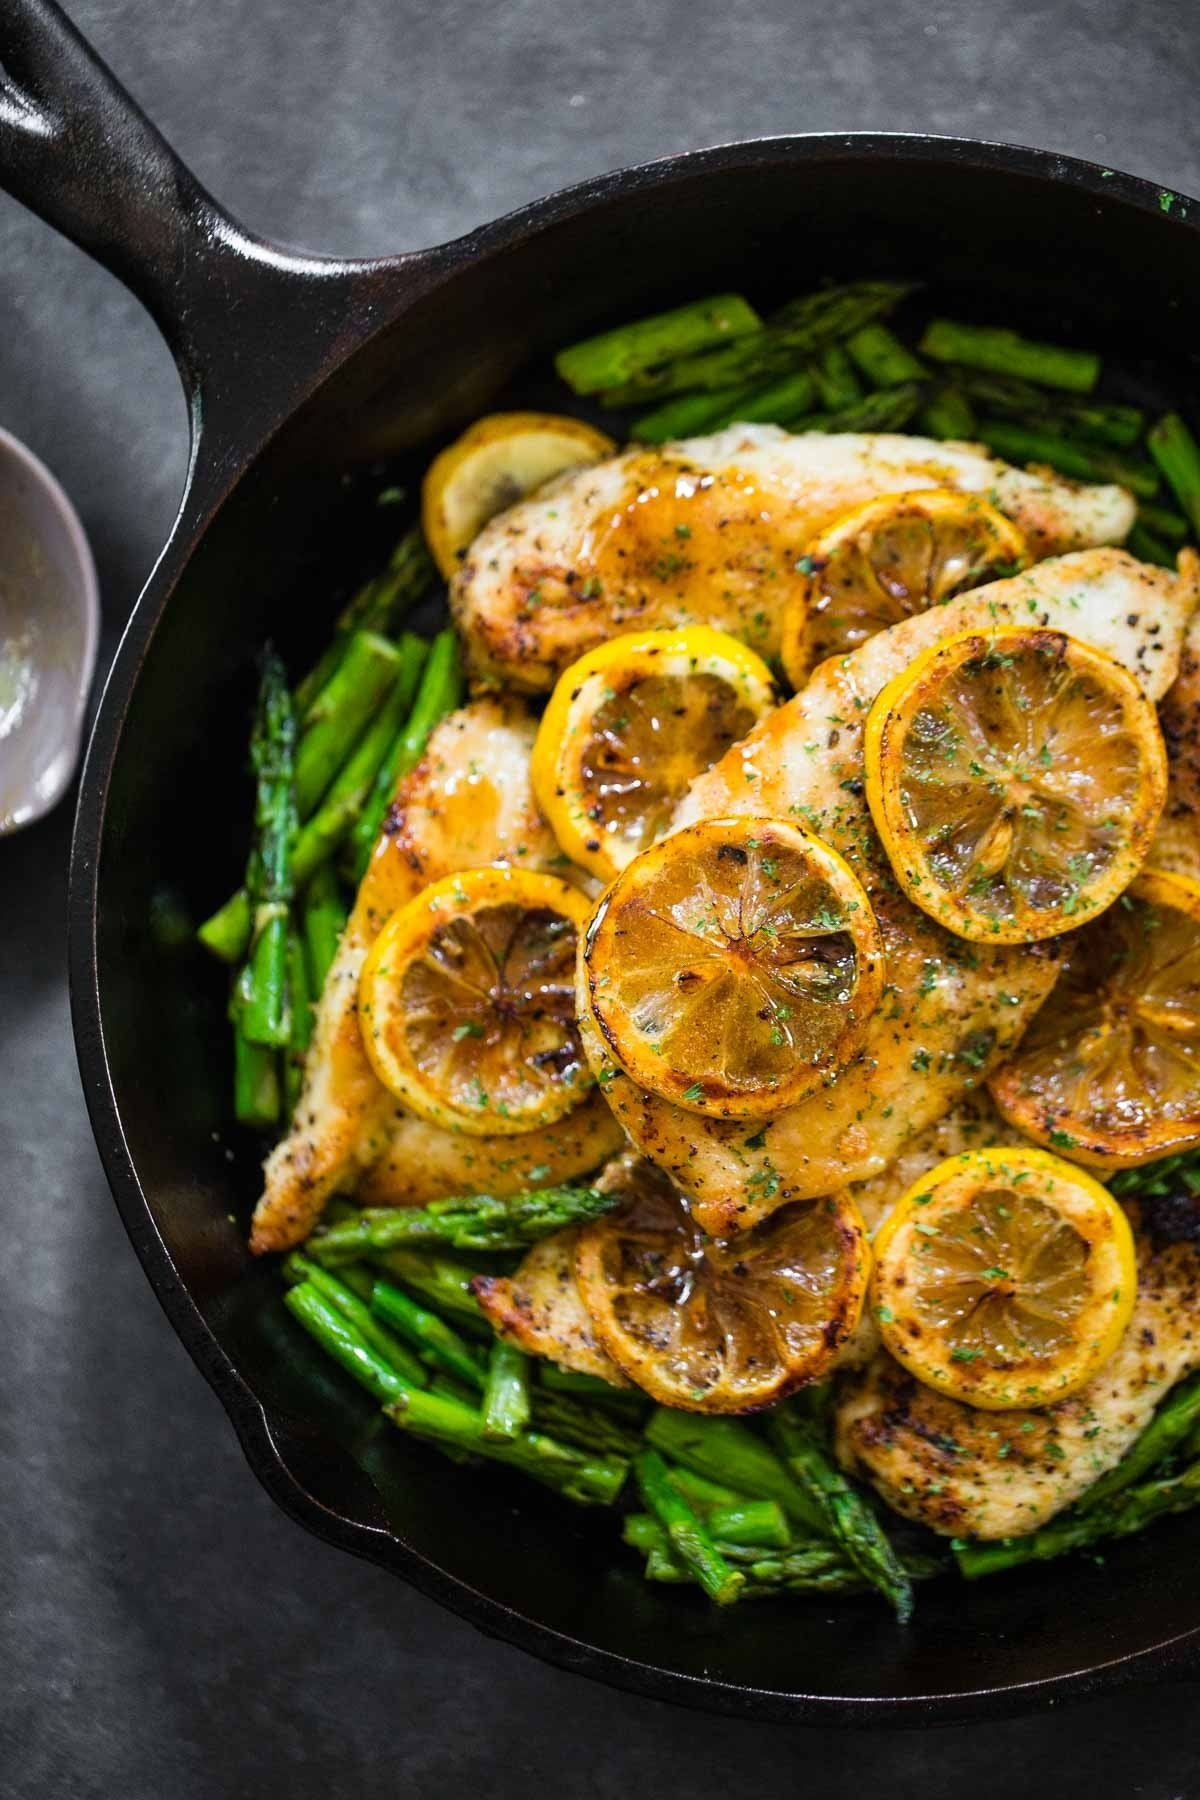 10 Attractive Healthy Dinner Ideas With Chicken 5 ingredient lemon chicken with asparagus recipe pinch of yum 2020